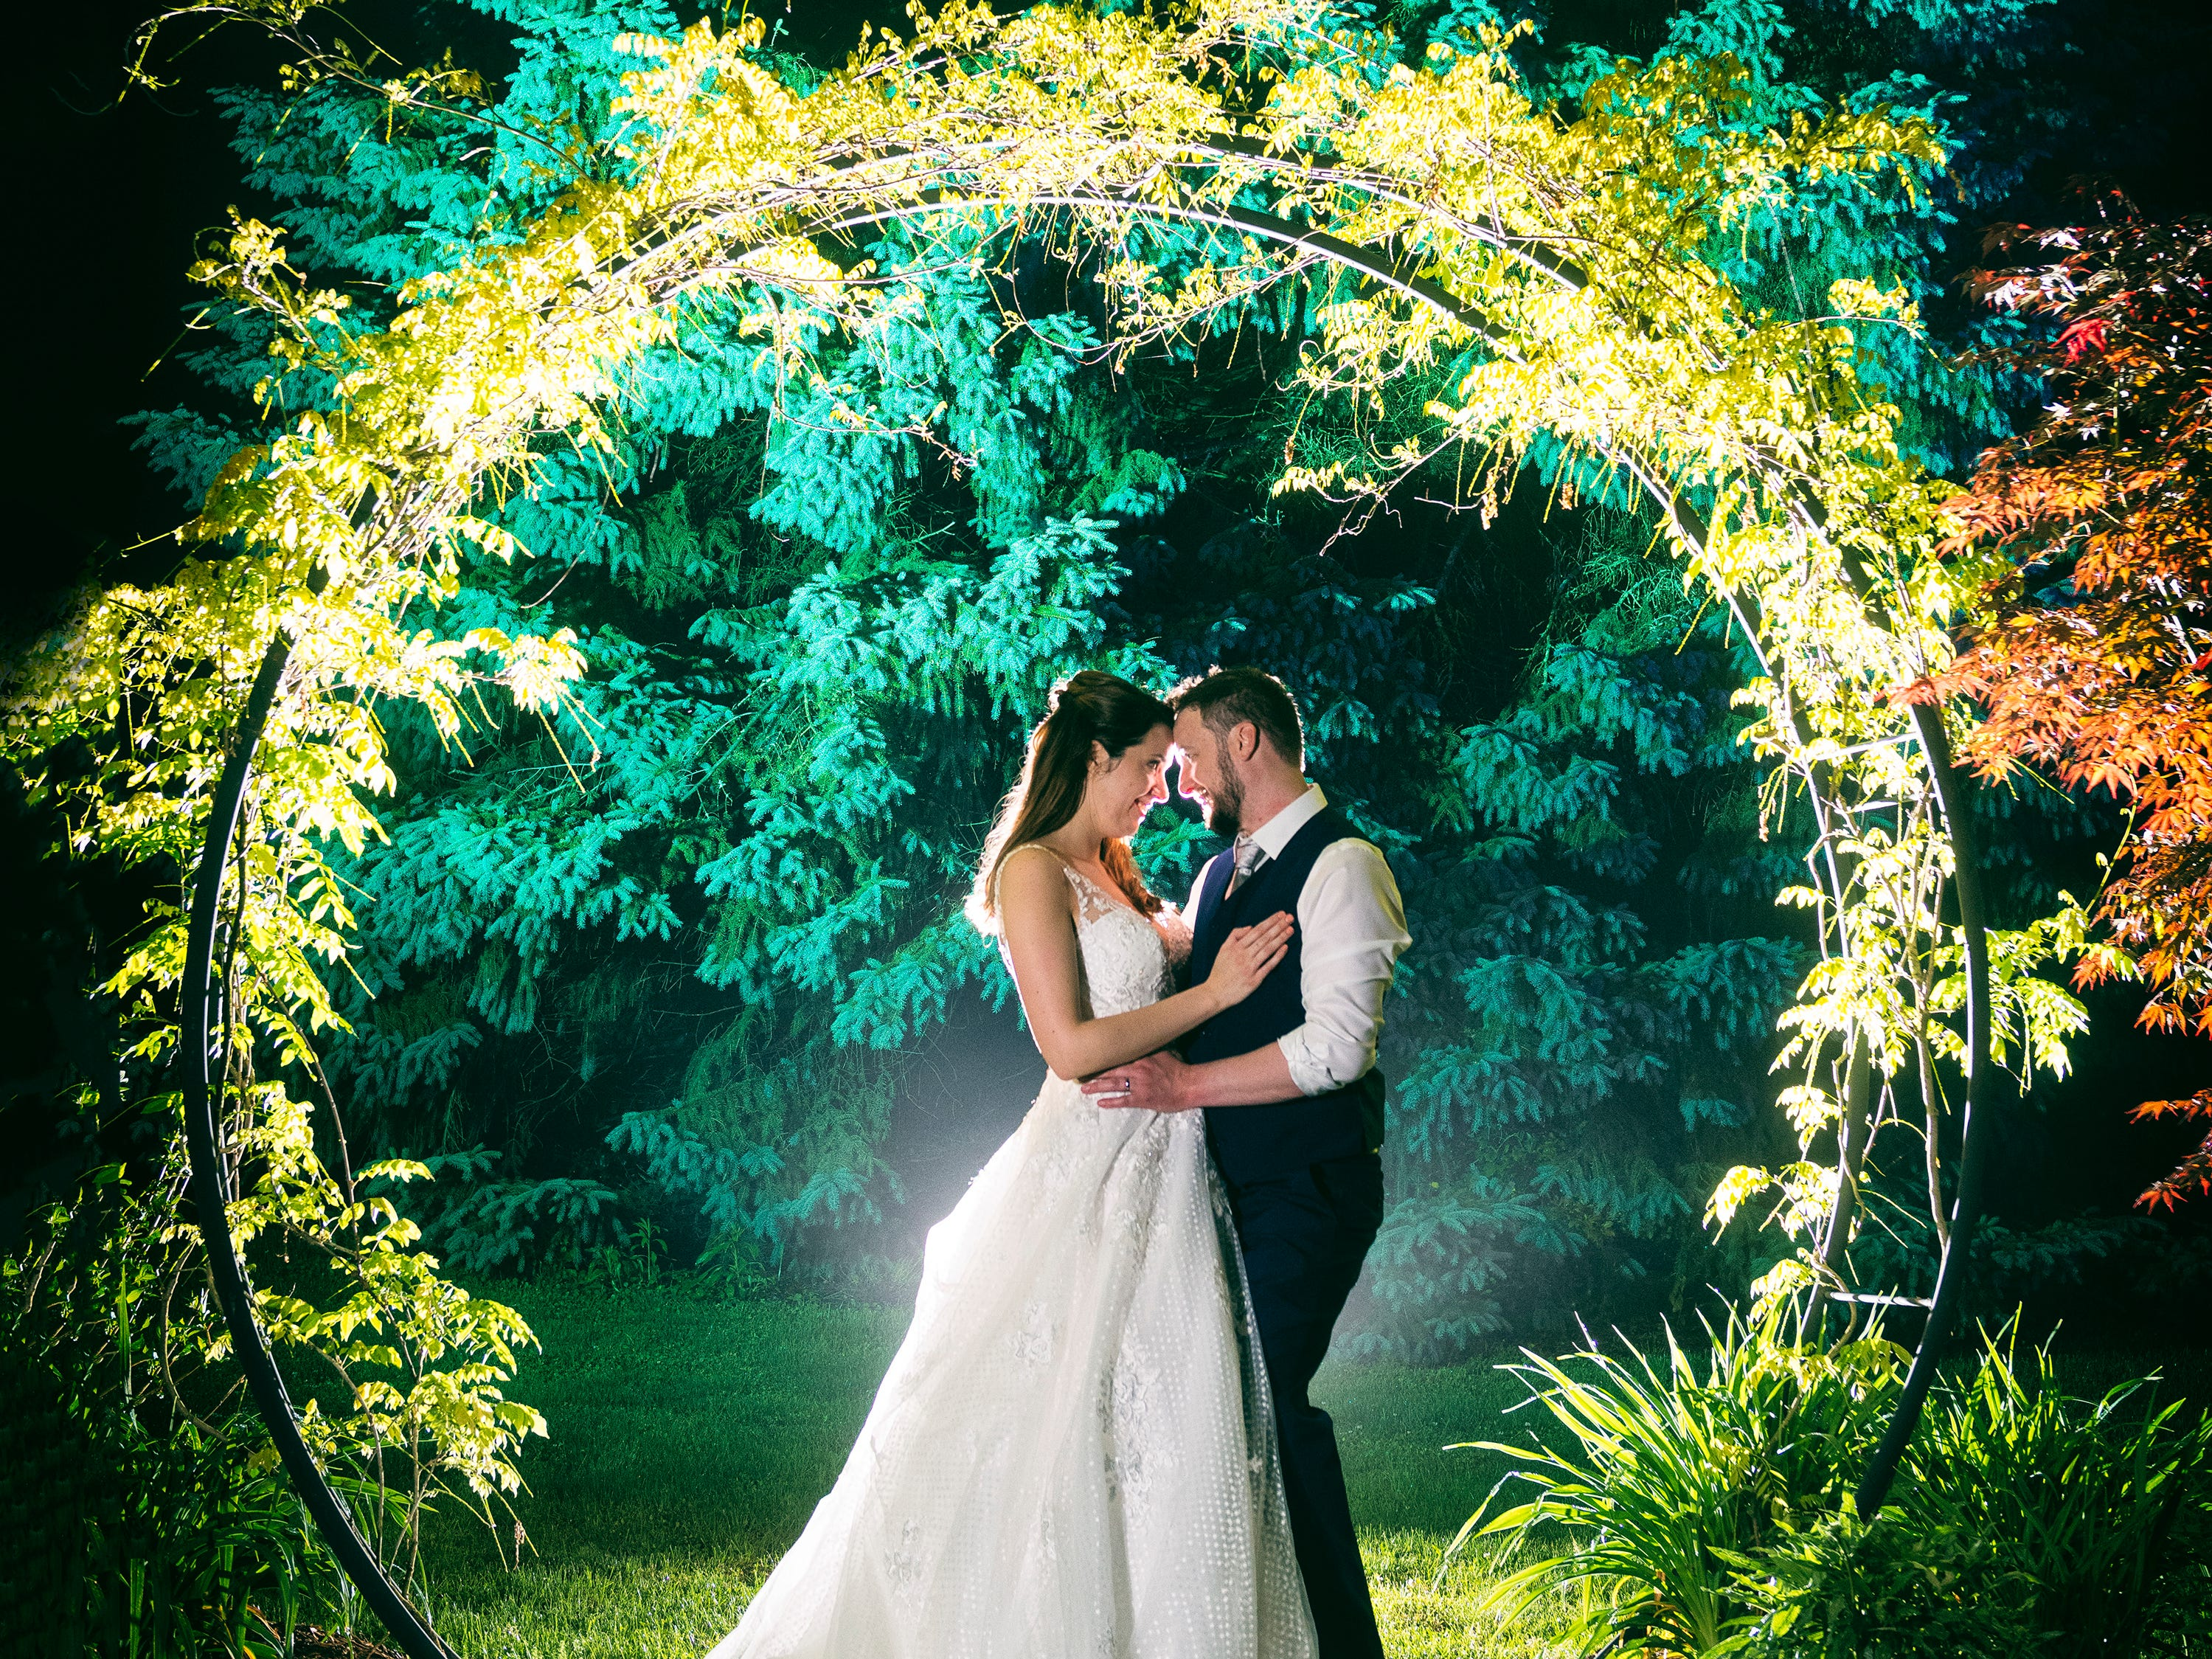 Spectacular night shots develop as Delaware wedding photographers combine skills